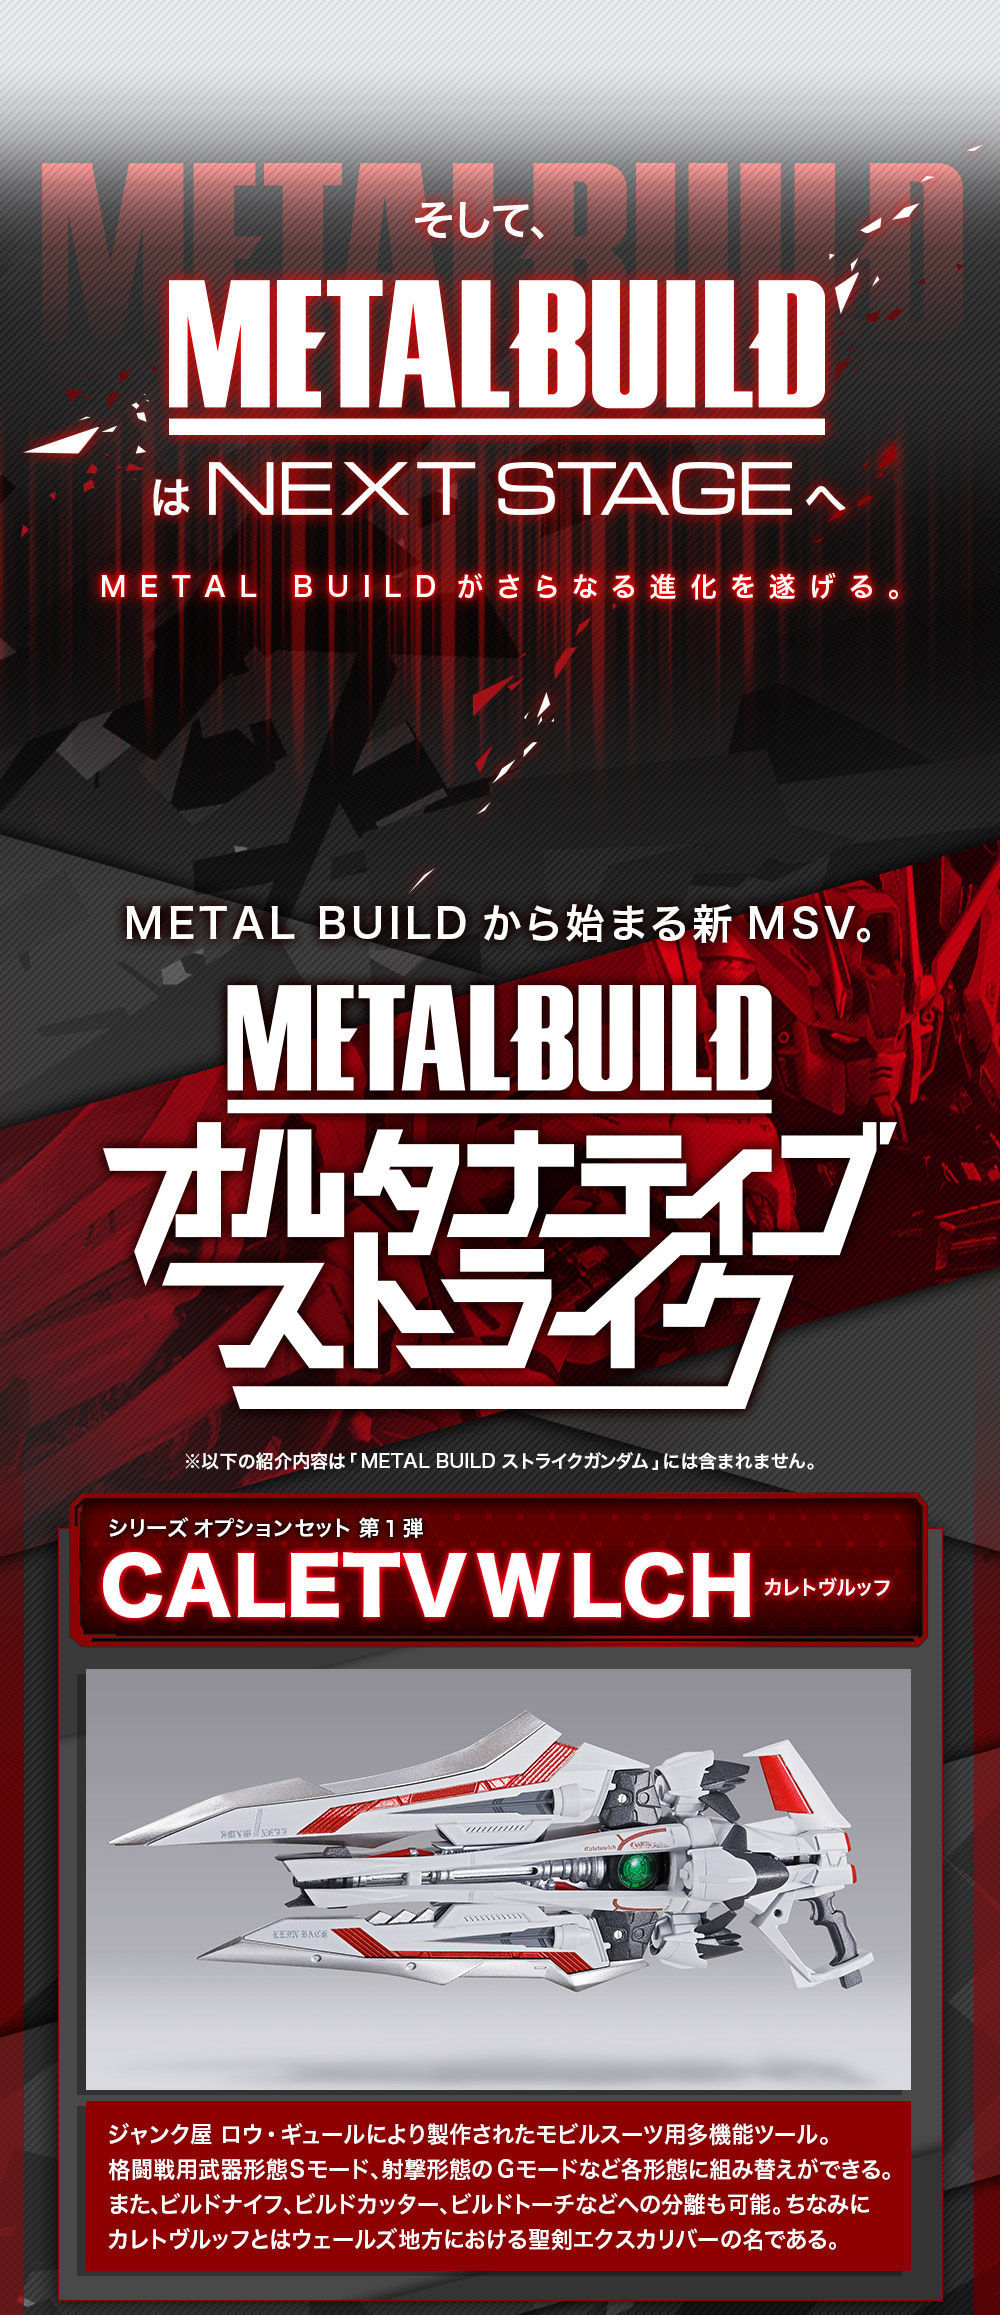 "A new MSV project ""METAL BUILD Alternative Strike"" will be announced at the event ""METAL BUILD∞-Metal Build Infinity"" held on 6/22 ・ 23."